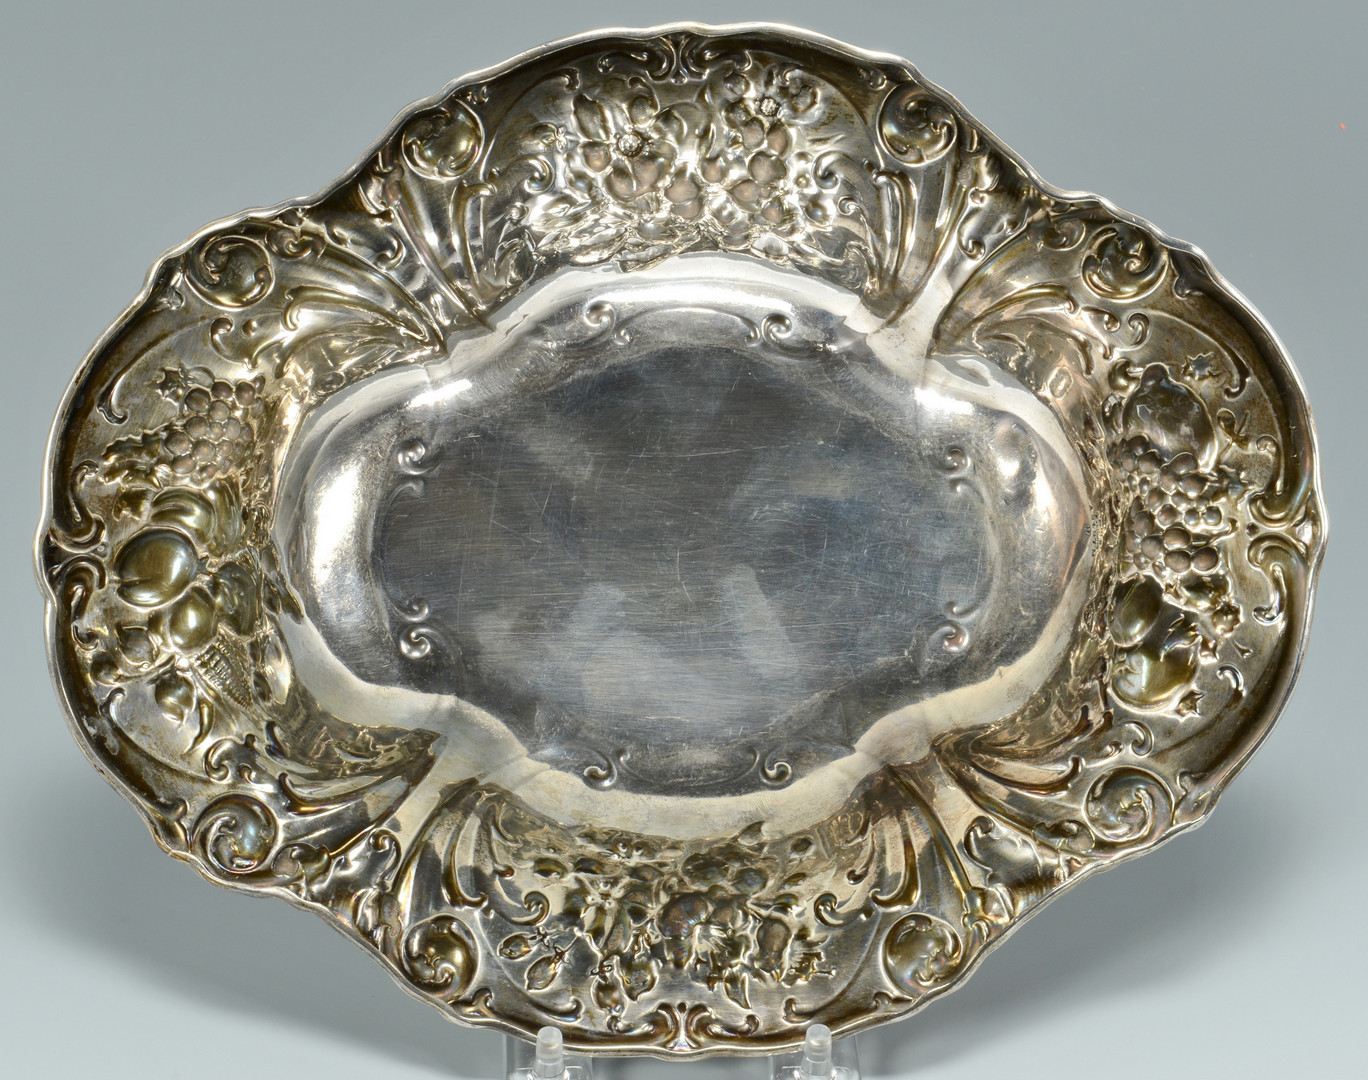 Lot 795: Gorham Sterling Repousse Serving Dish